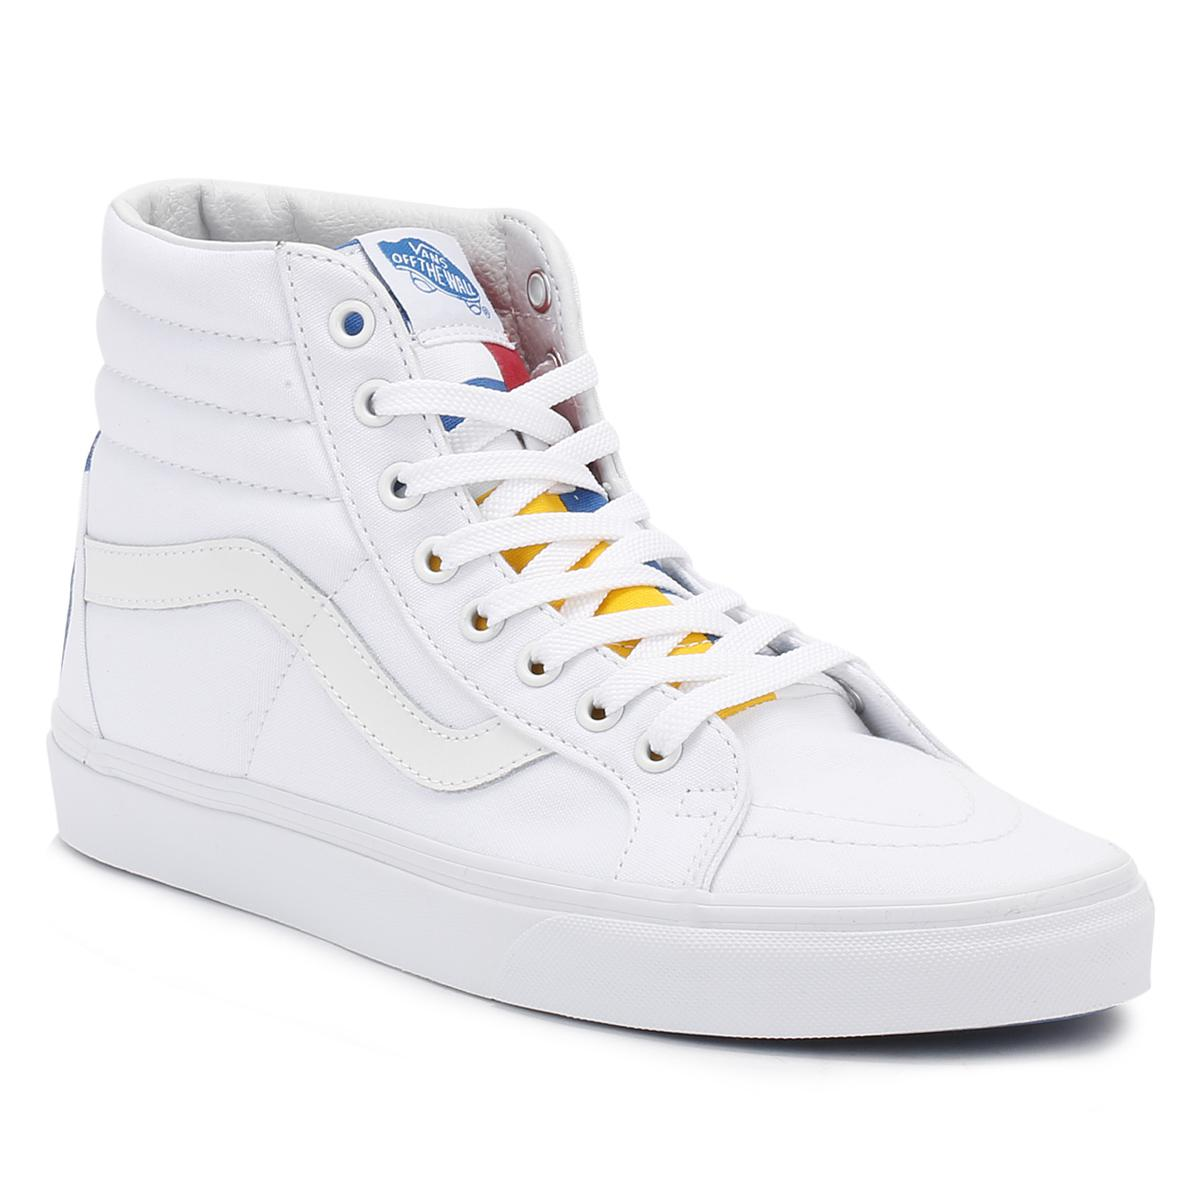 Lyst - Vans Mens 1966 True White blue red Sk8-hi Reissue Trainers in ... ff6477b50